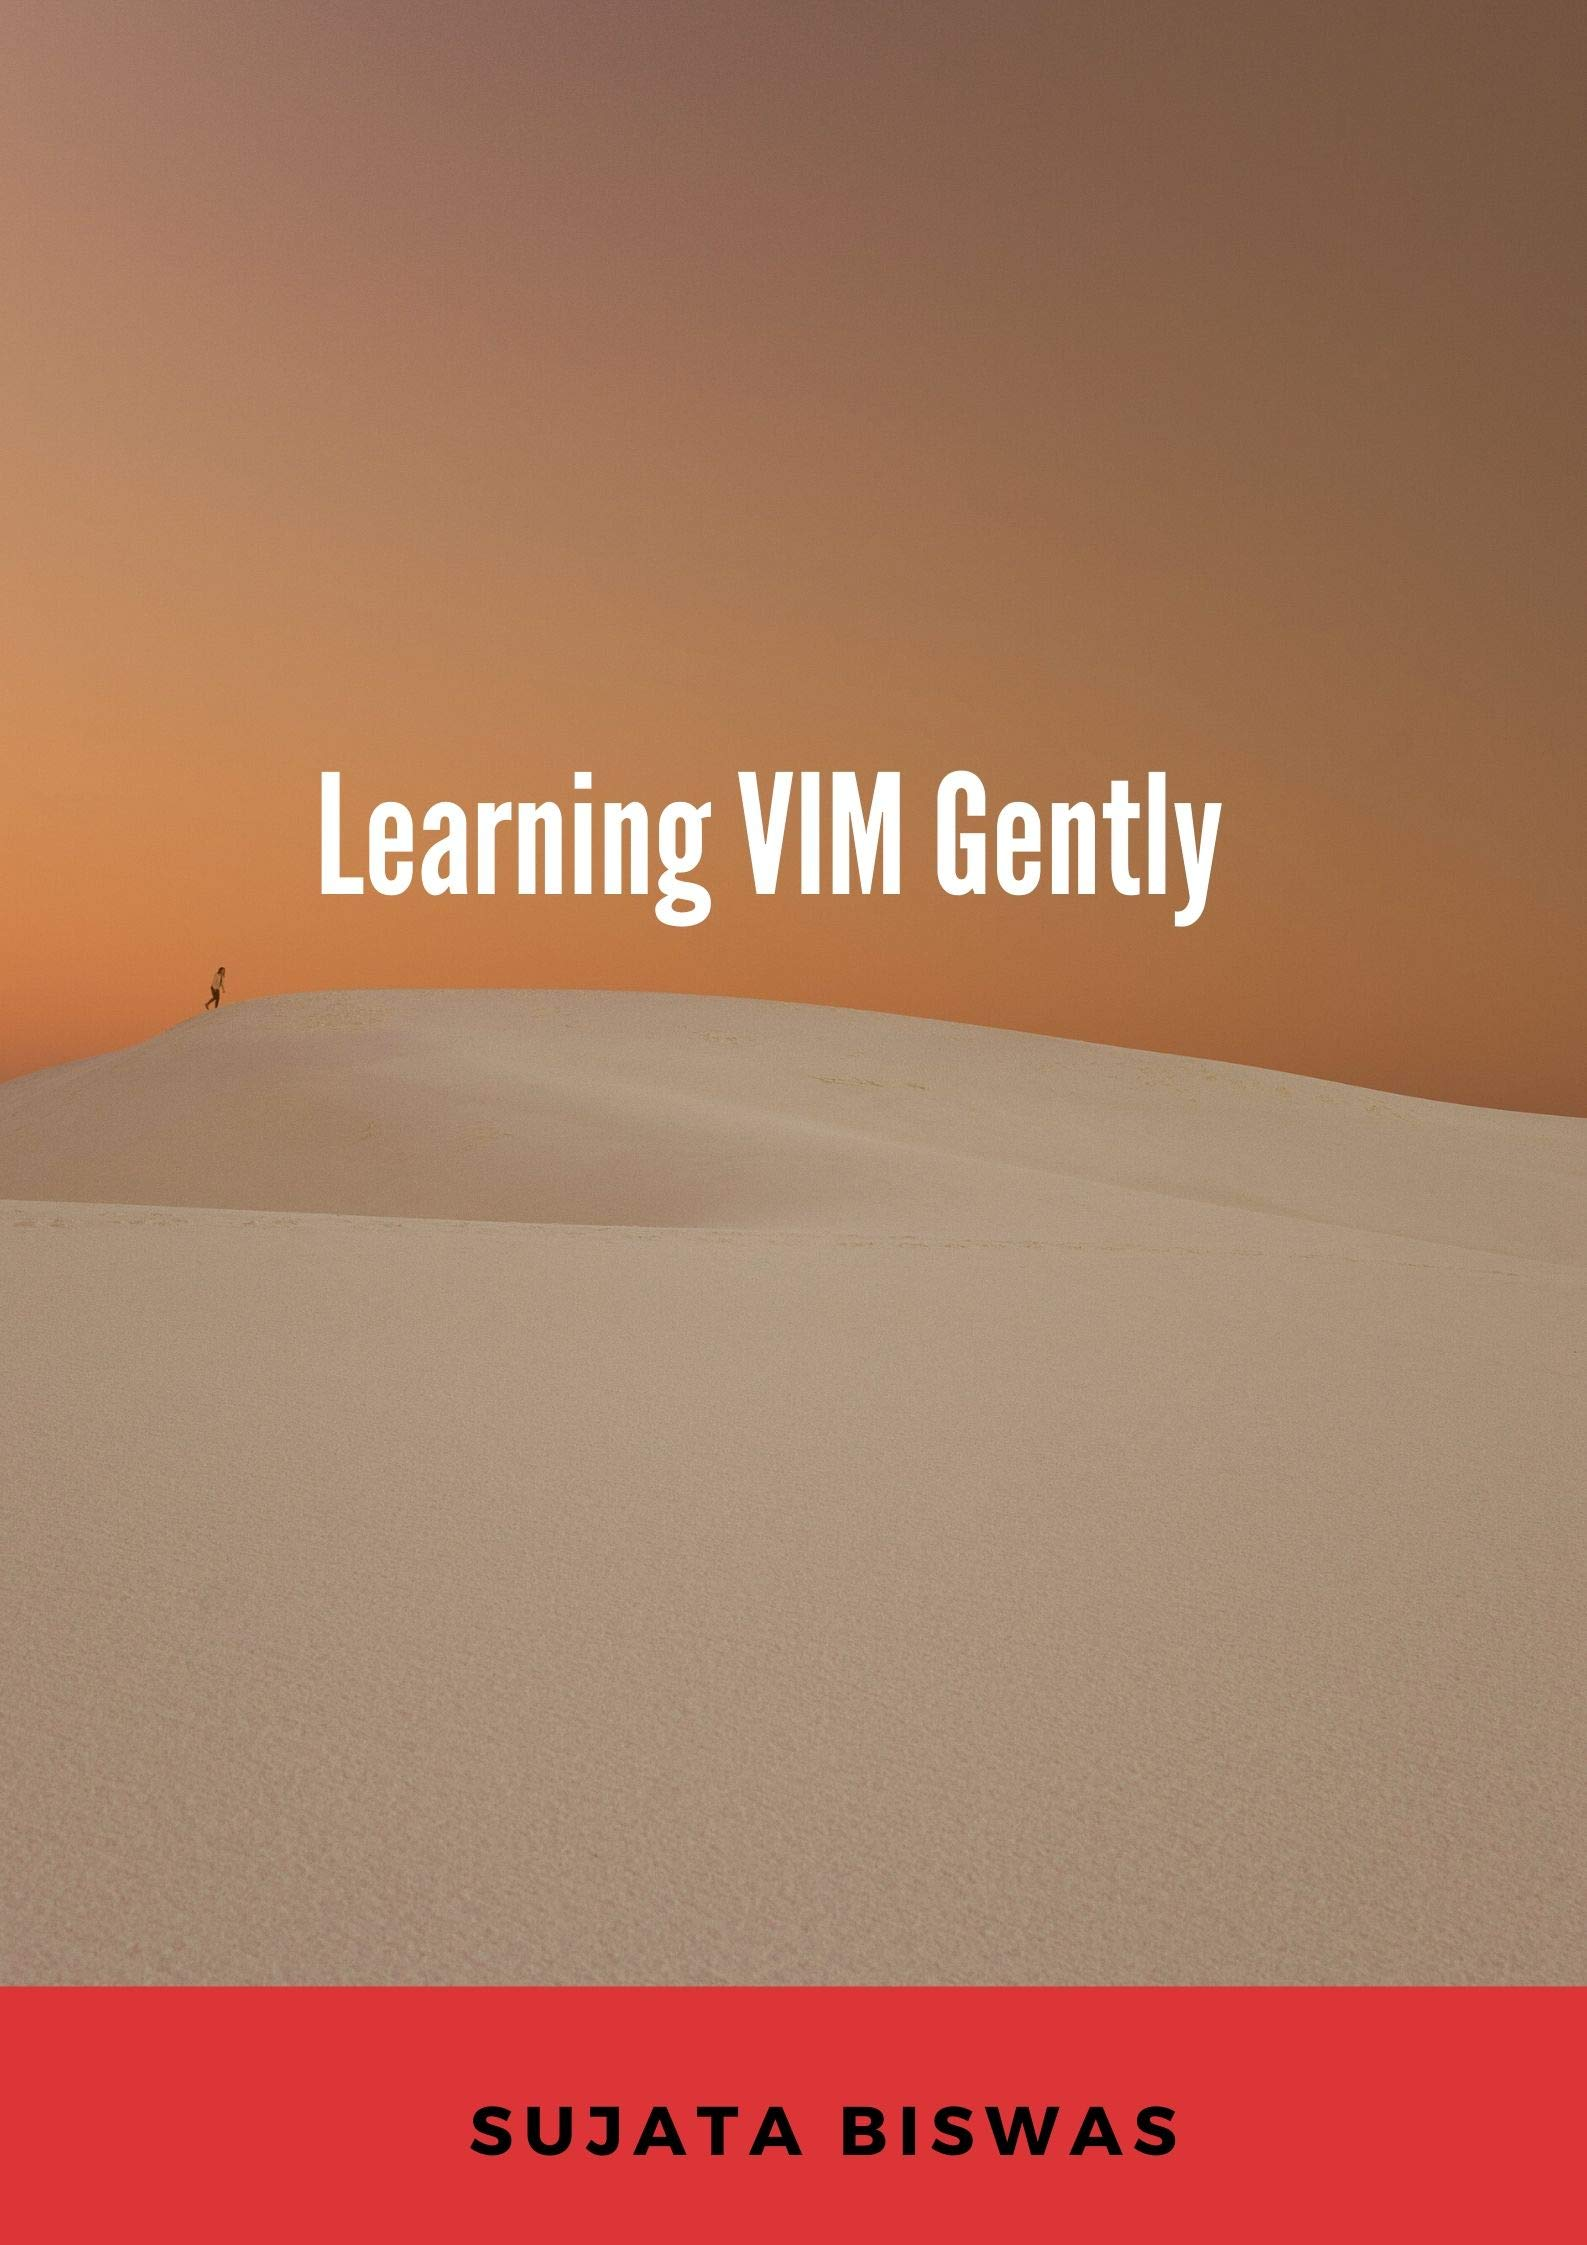 Image OfLearning VIM Gently (English Edition)